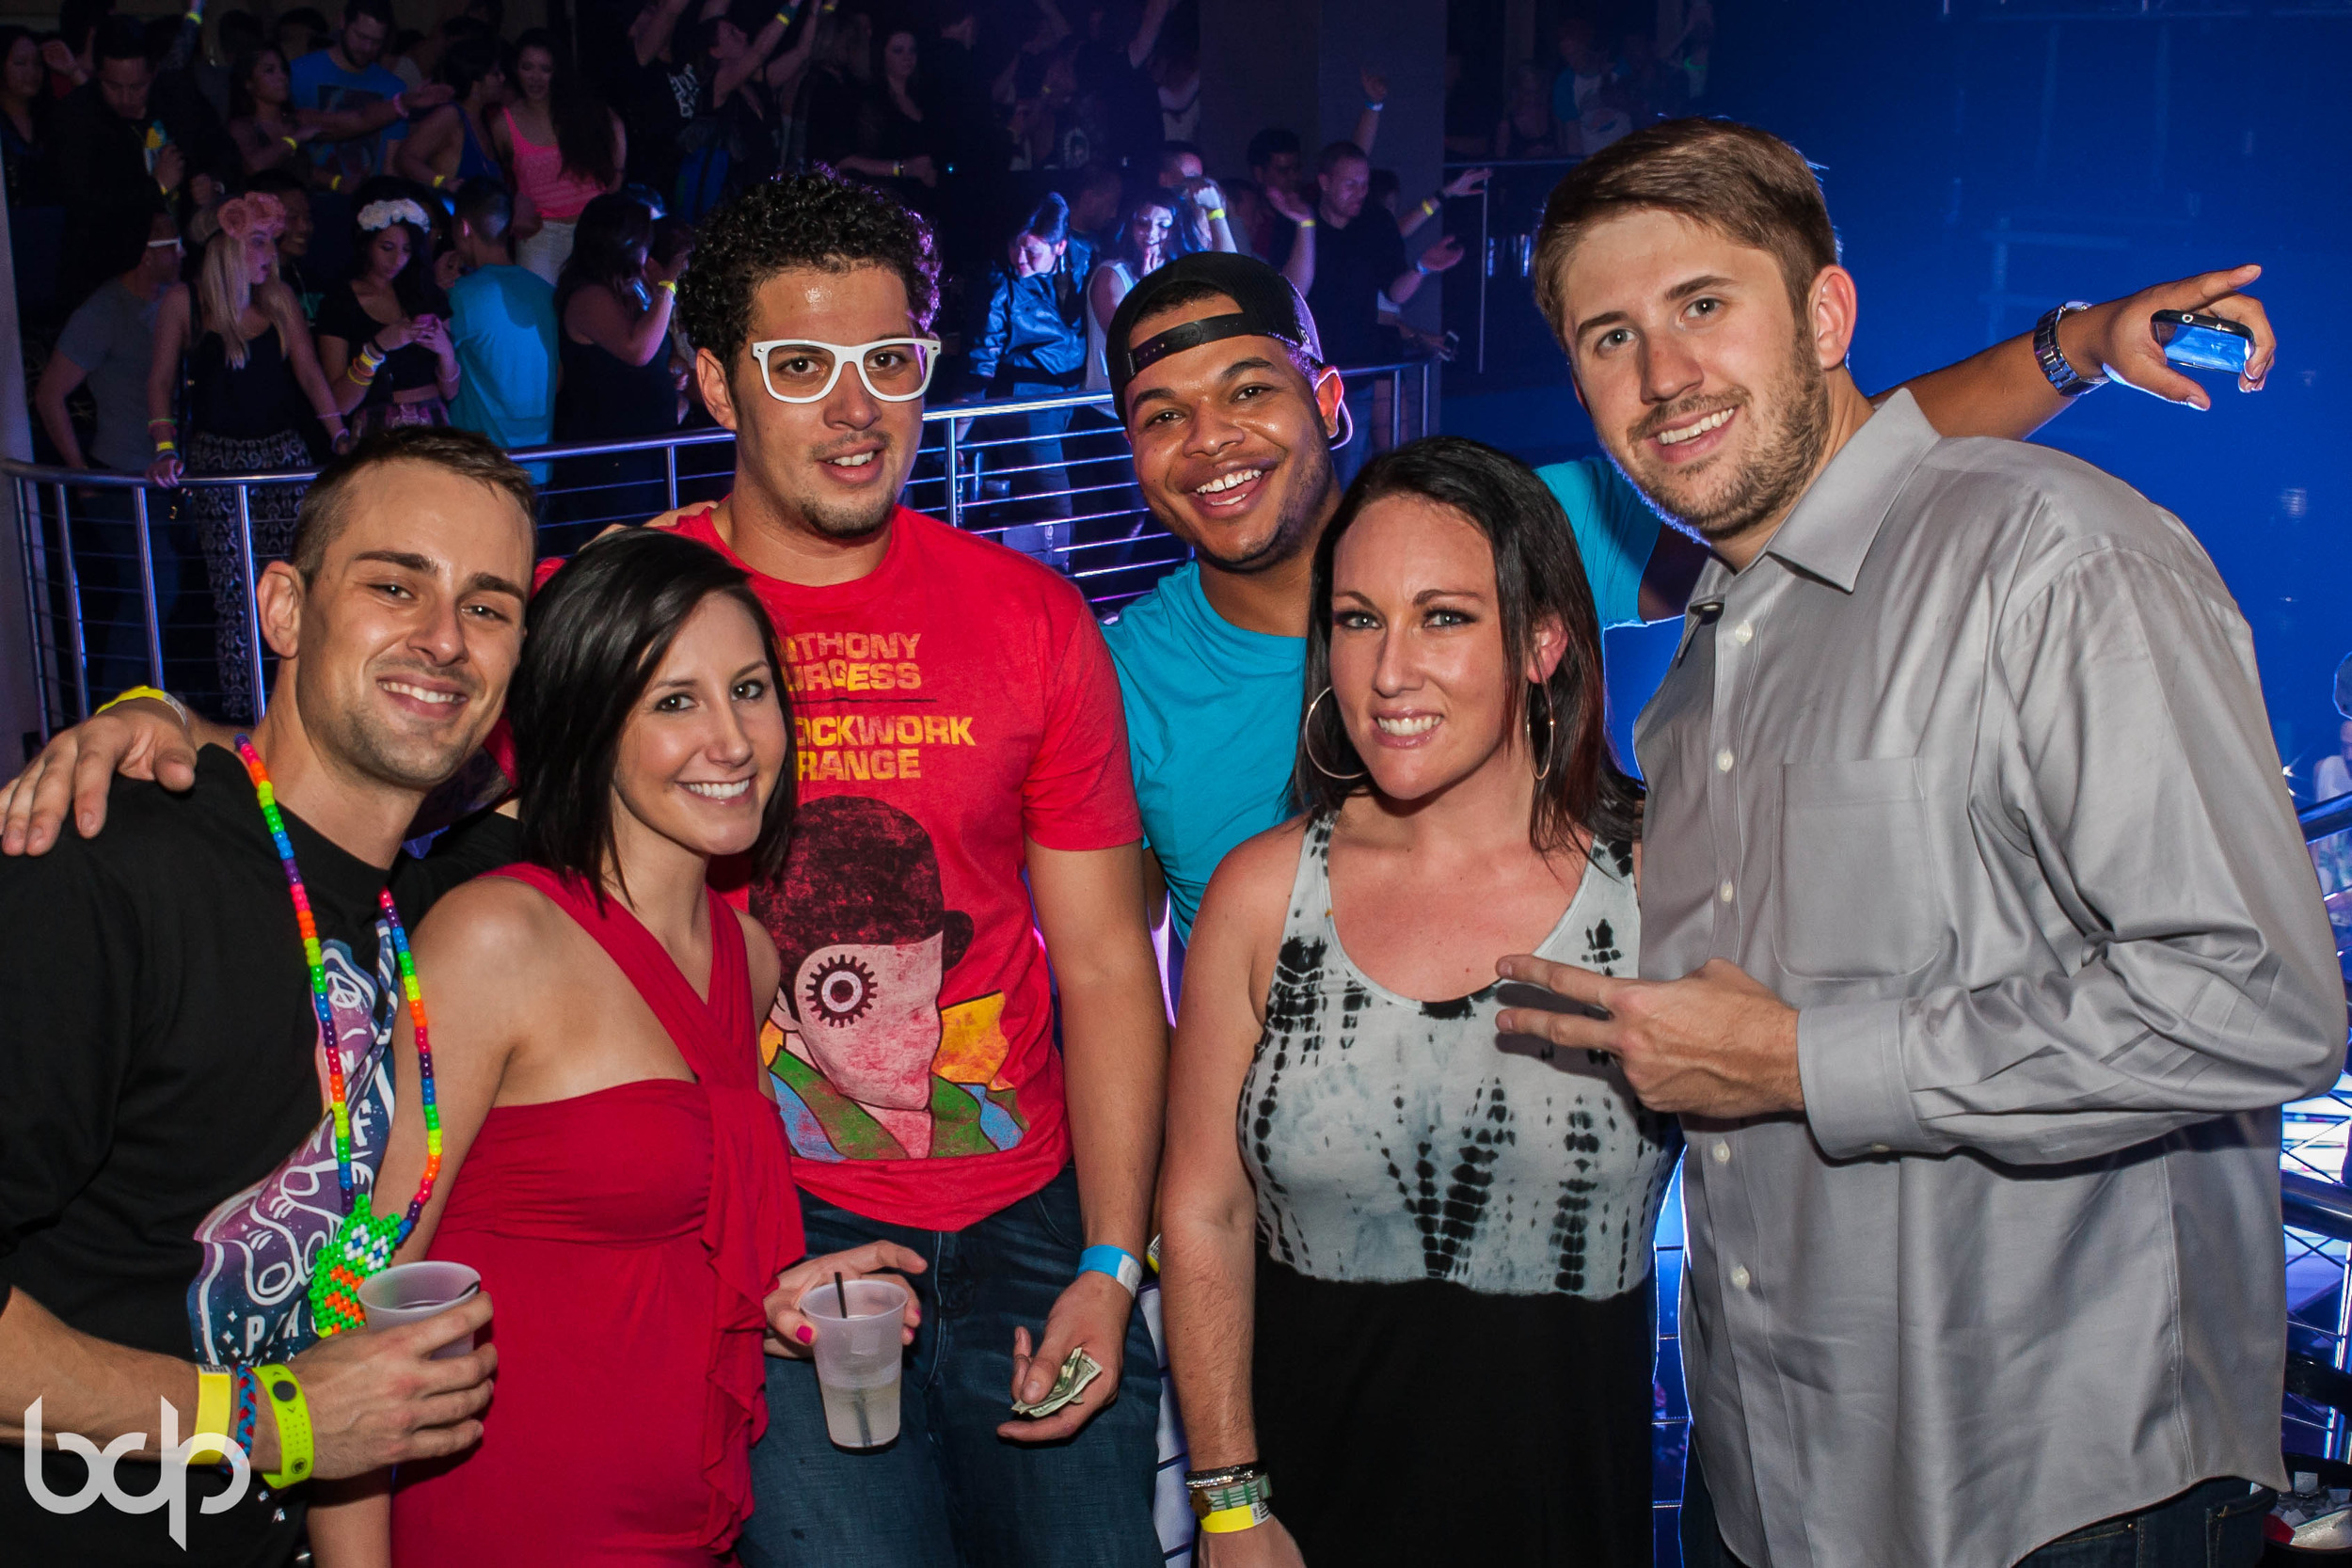 Aokify America Tour at Epic at Epic 110913 BDP-11.jpg